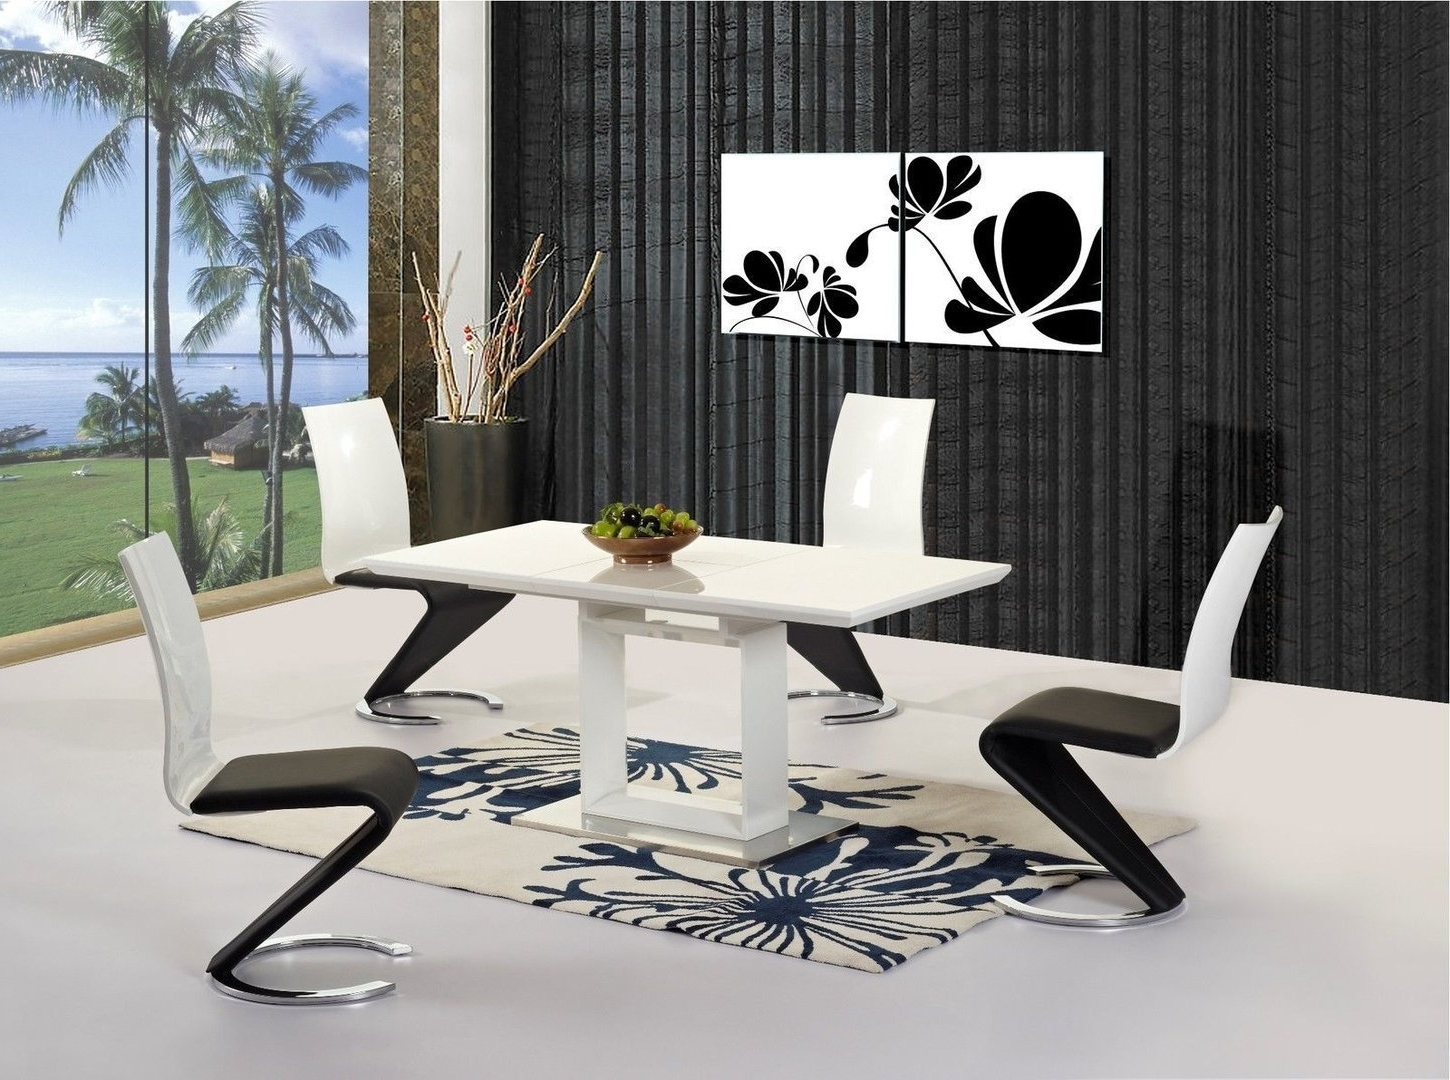 Widely Used 51 High Table And Chair Set, Round Glass Dining Room Table Sets For Hi Gloss Dining Tables Sets (View 21 of 25)